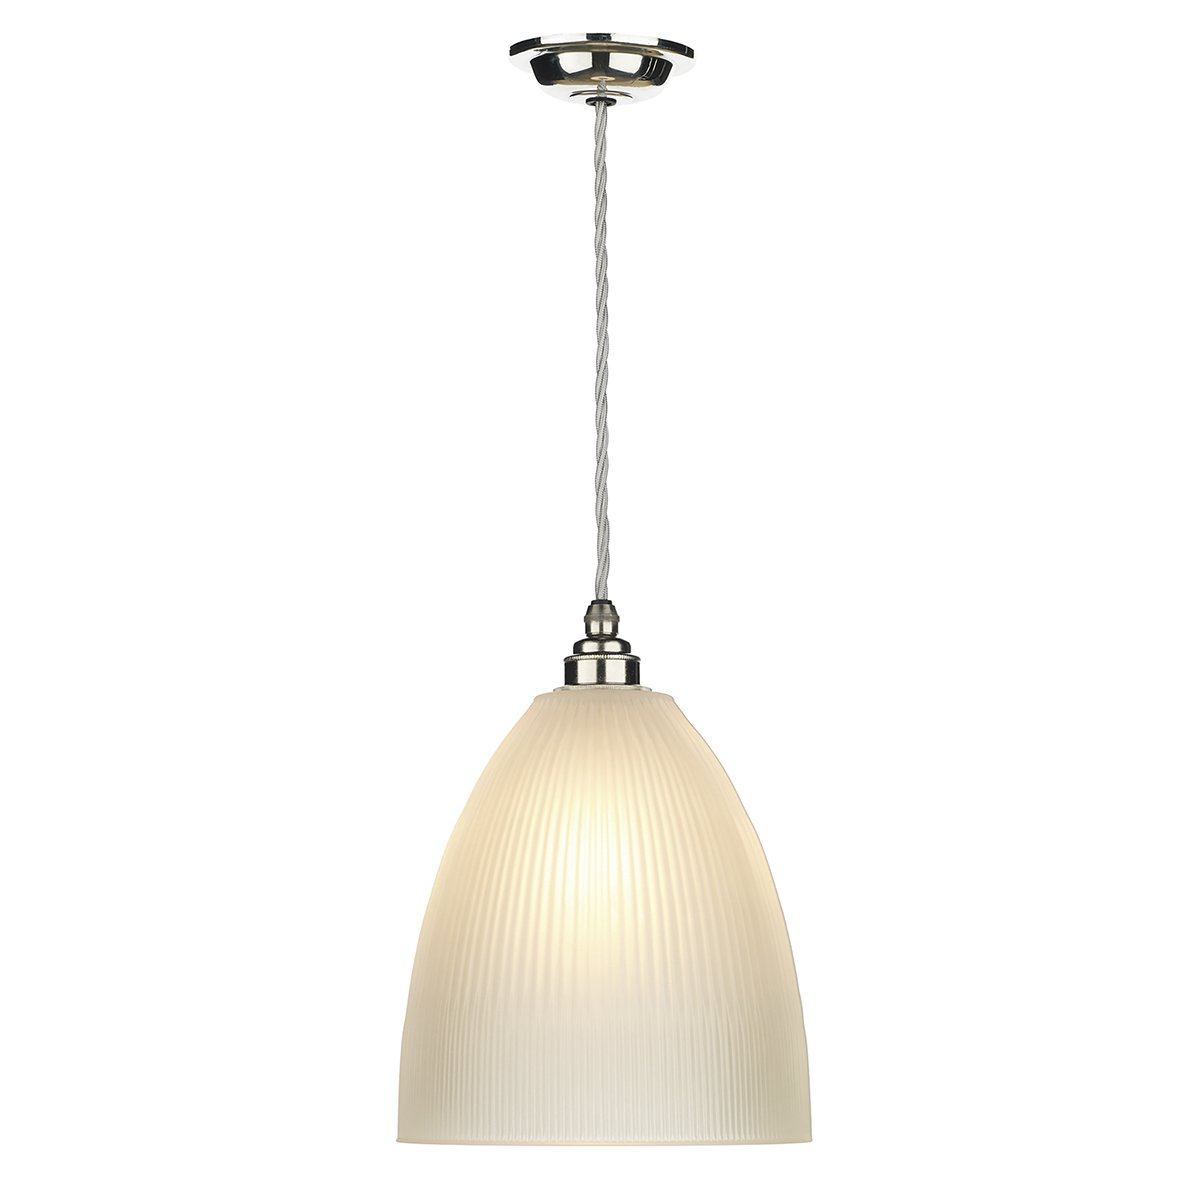 David Hunt Lighting DUX0150 Duxford 1 Light Pendant in Nickel Chrome